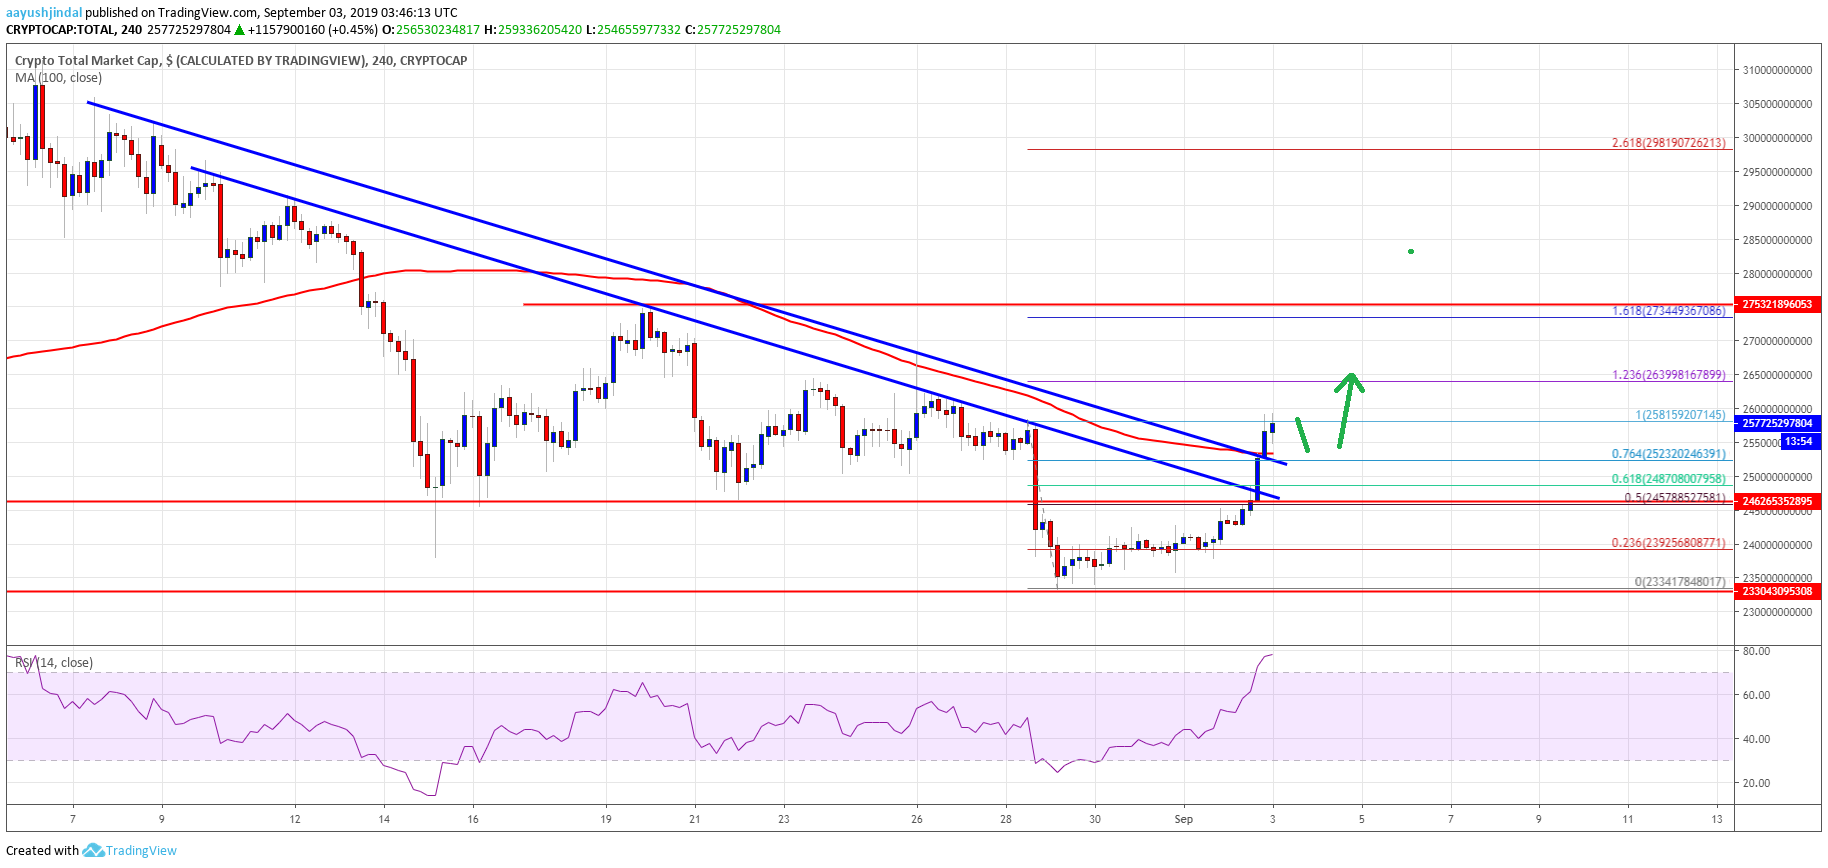 Bitcoin And Crypto Market Rally Looks Real: LTC, BNB, BCH, TRX Analysis